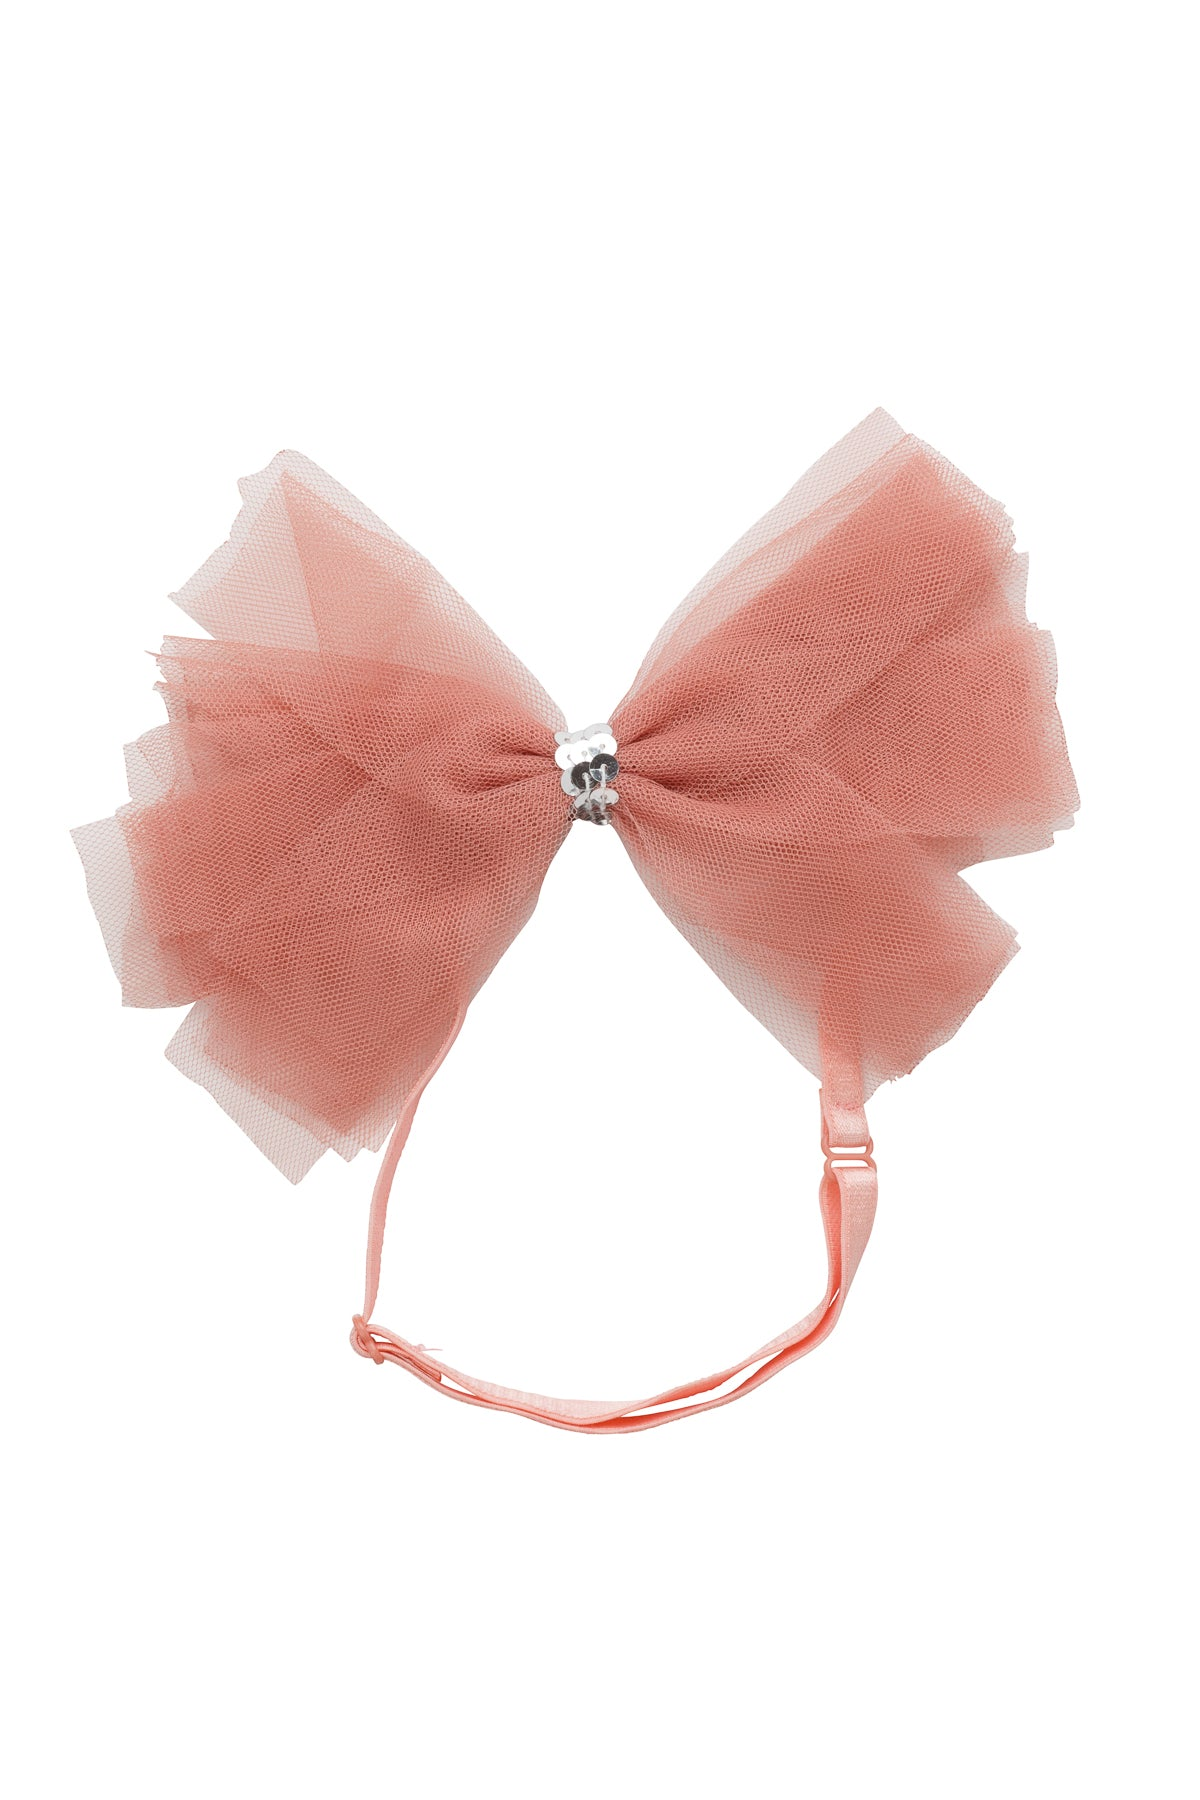 Soft Tulle Strips CLIP + WRAP - Coral - PROJECT 6, modest fashion